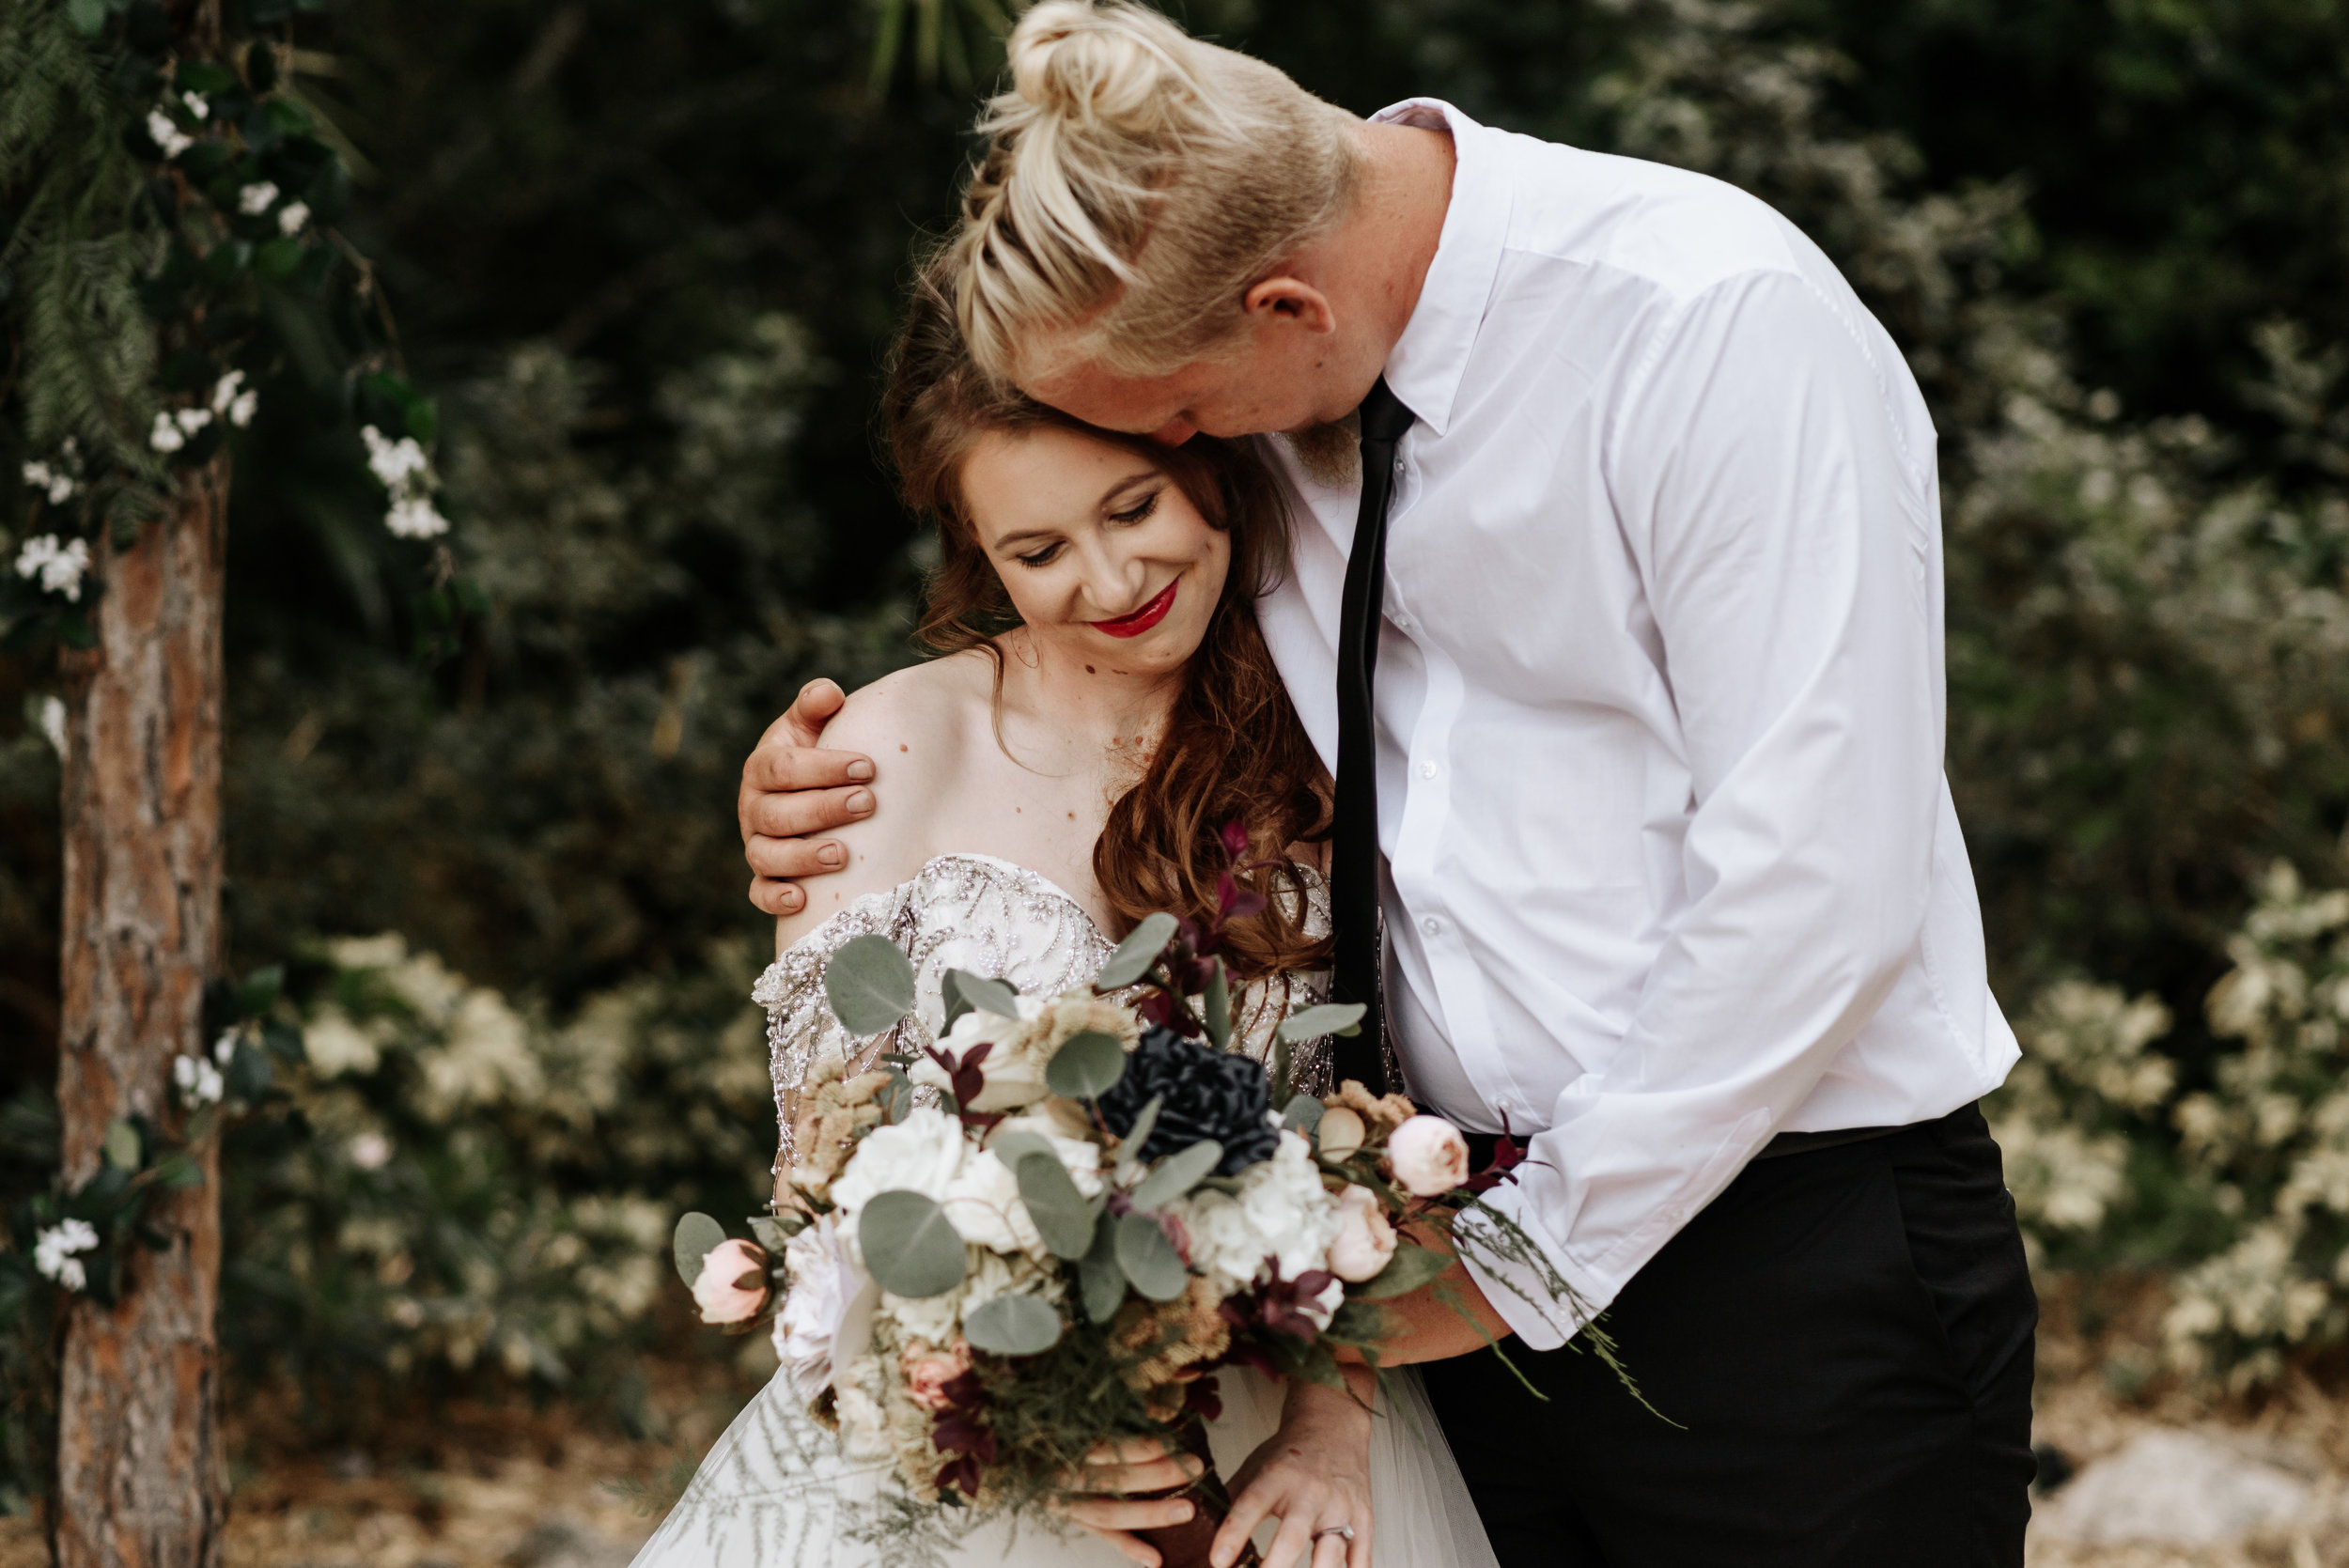 Grant-Station-Styled-Shoot-Whimsical-Moody-Fairytale-Wedding-Photography-by-V-9721.jpg